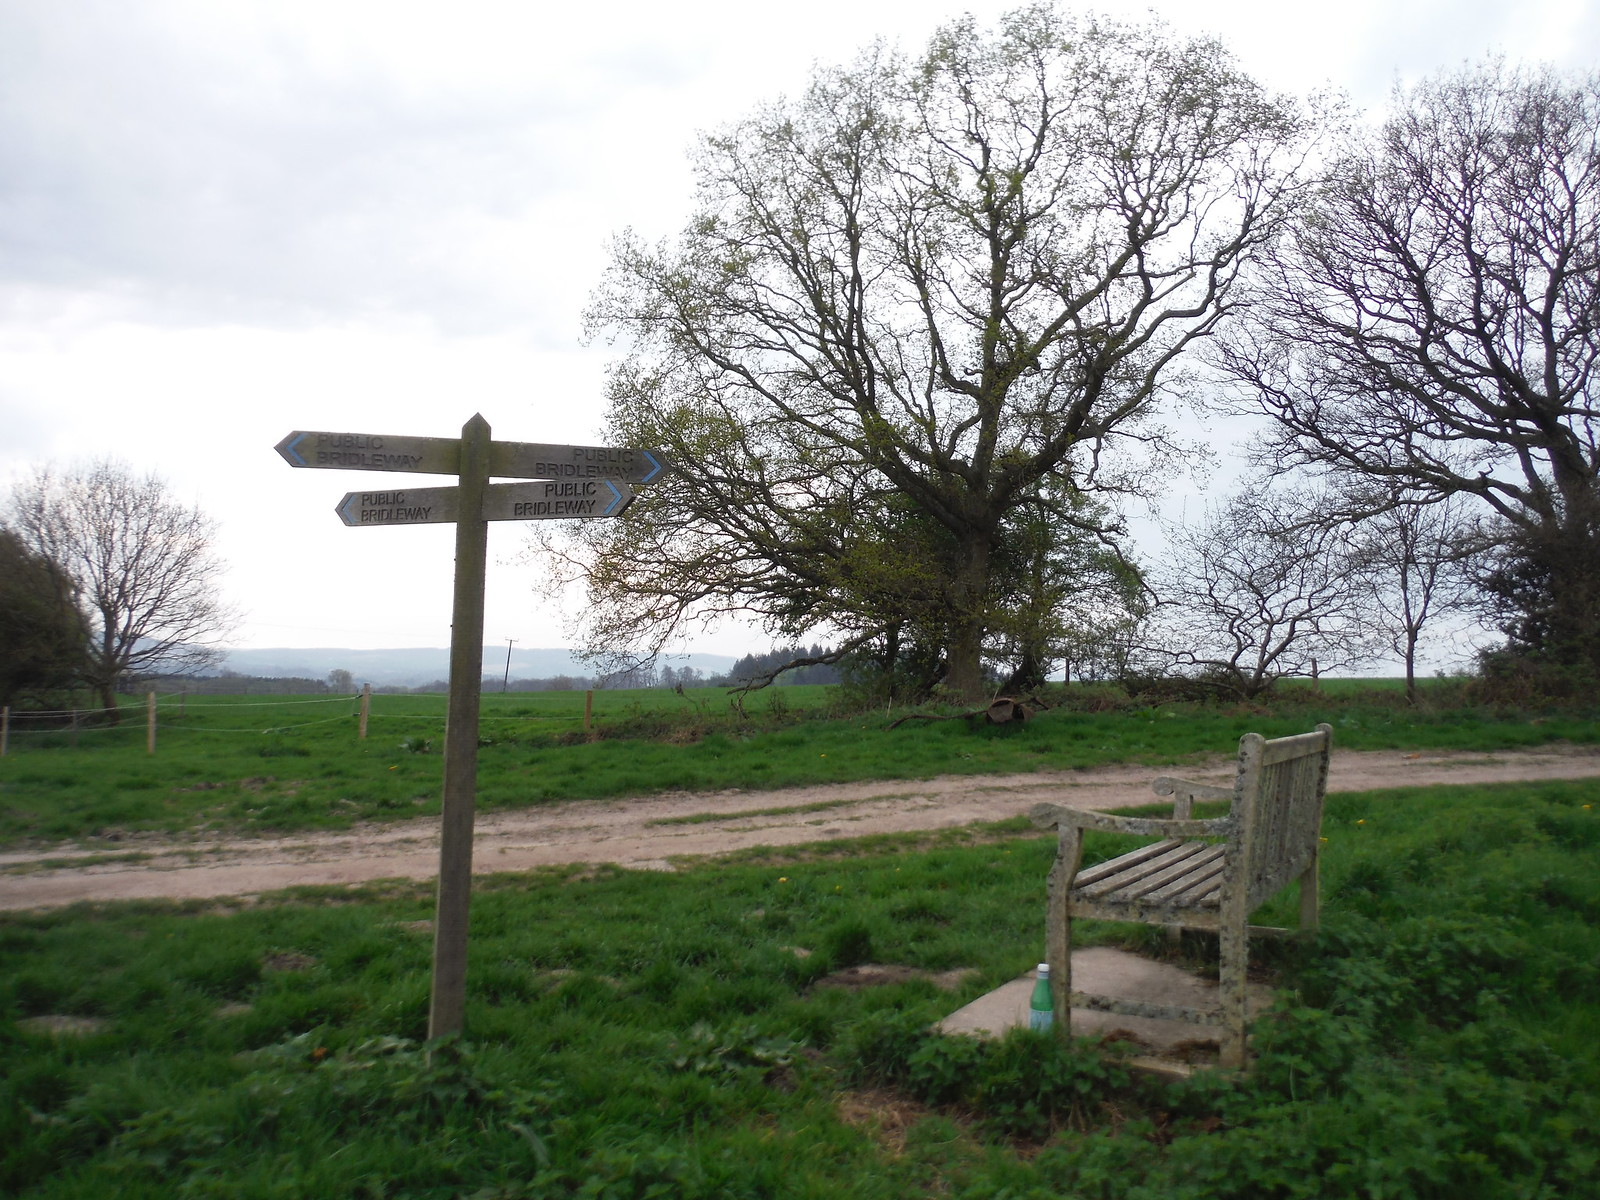 Four-way Signpost and Bench by Upper Vining Farm SWC Walk 48 Haslemere to Midhurst (via Lurgashall or Lickfold)